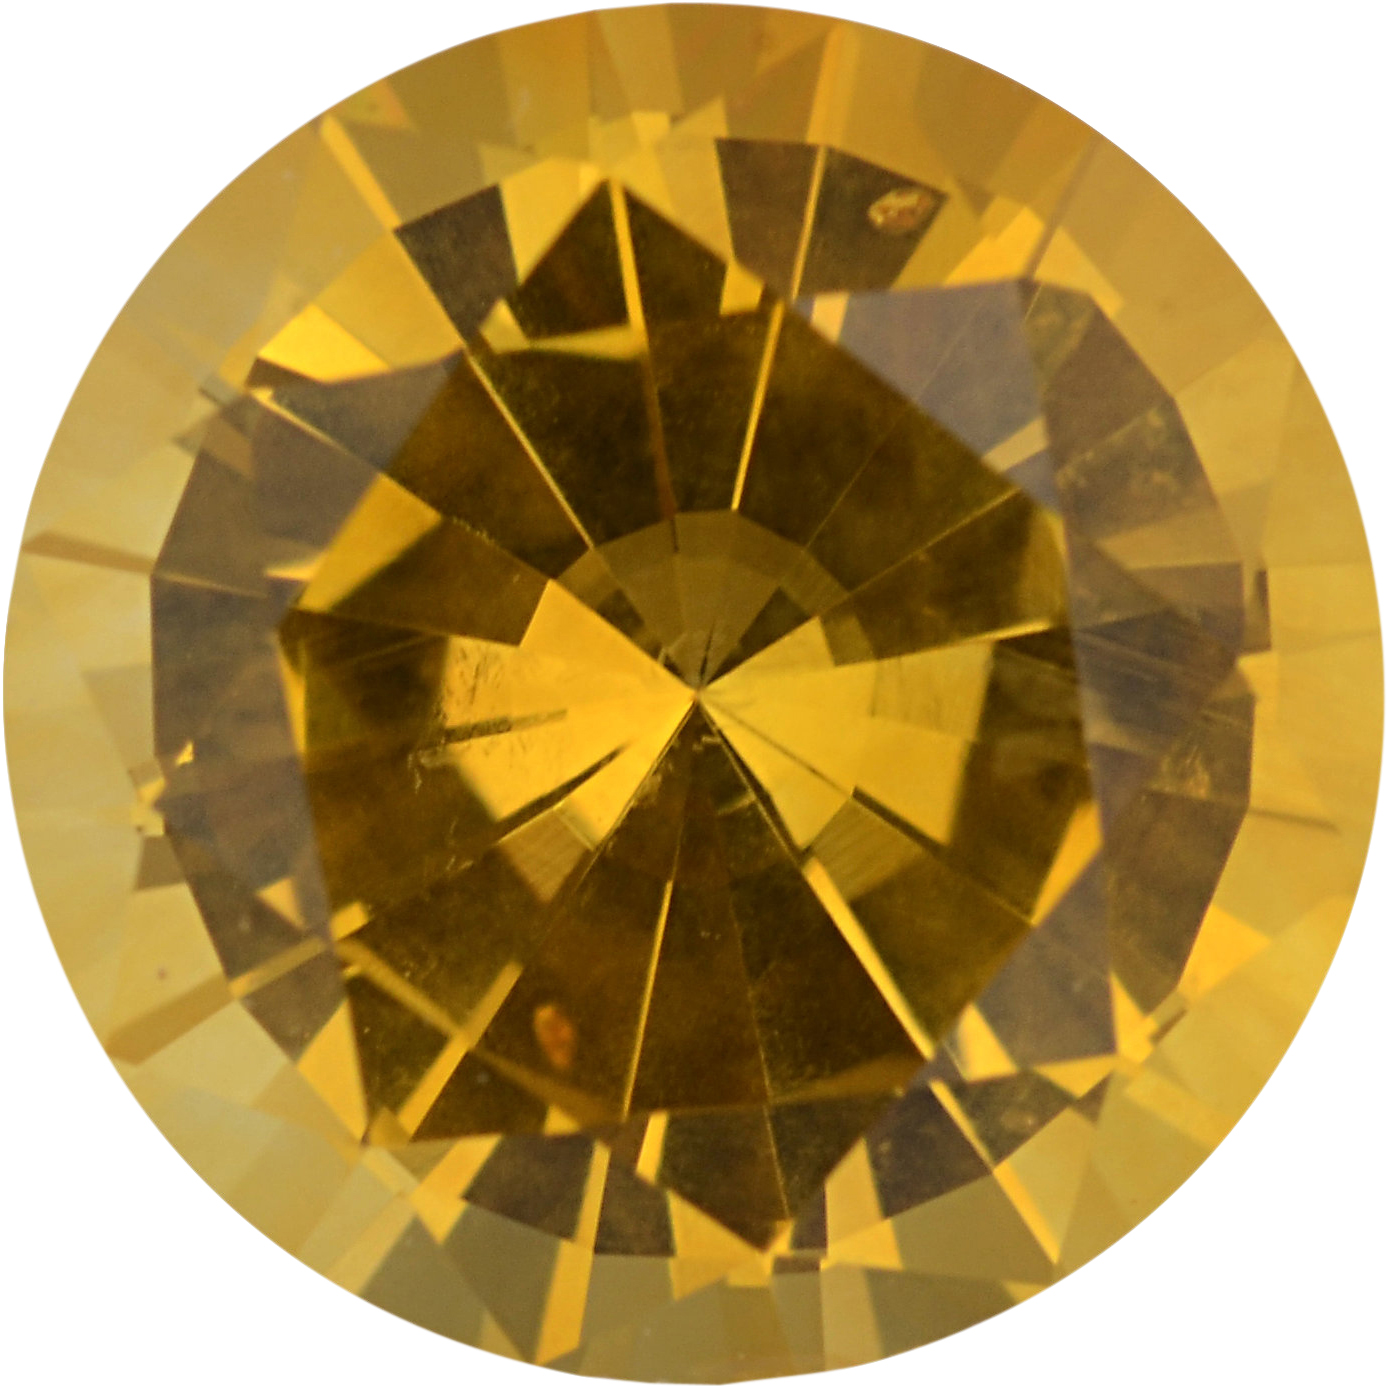 Special Buy On Sapphire Loose Gem in Round Cut, Light Orangy Yellow, 6.8 mm, 1.36 Carats